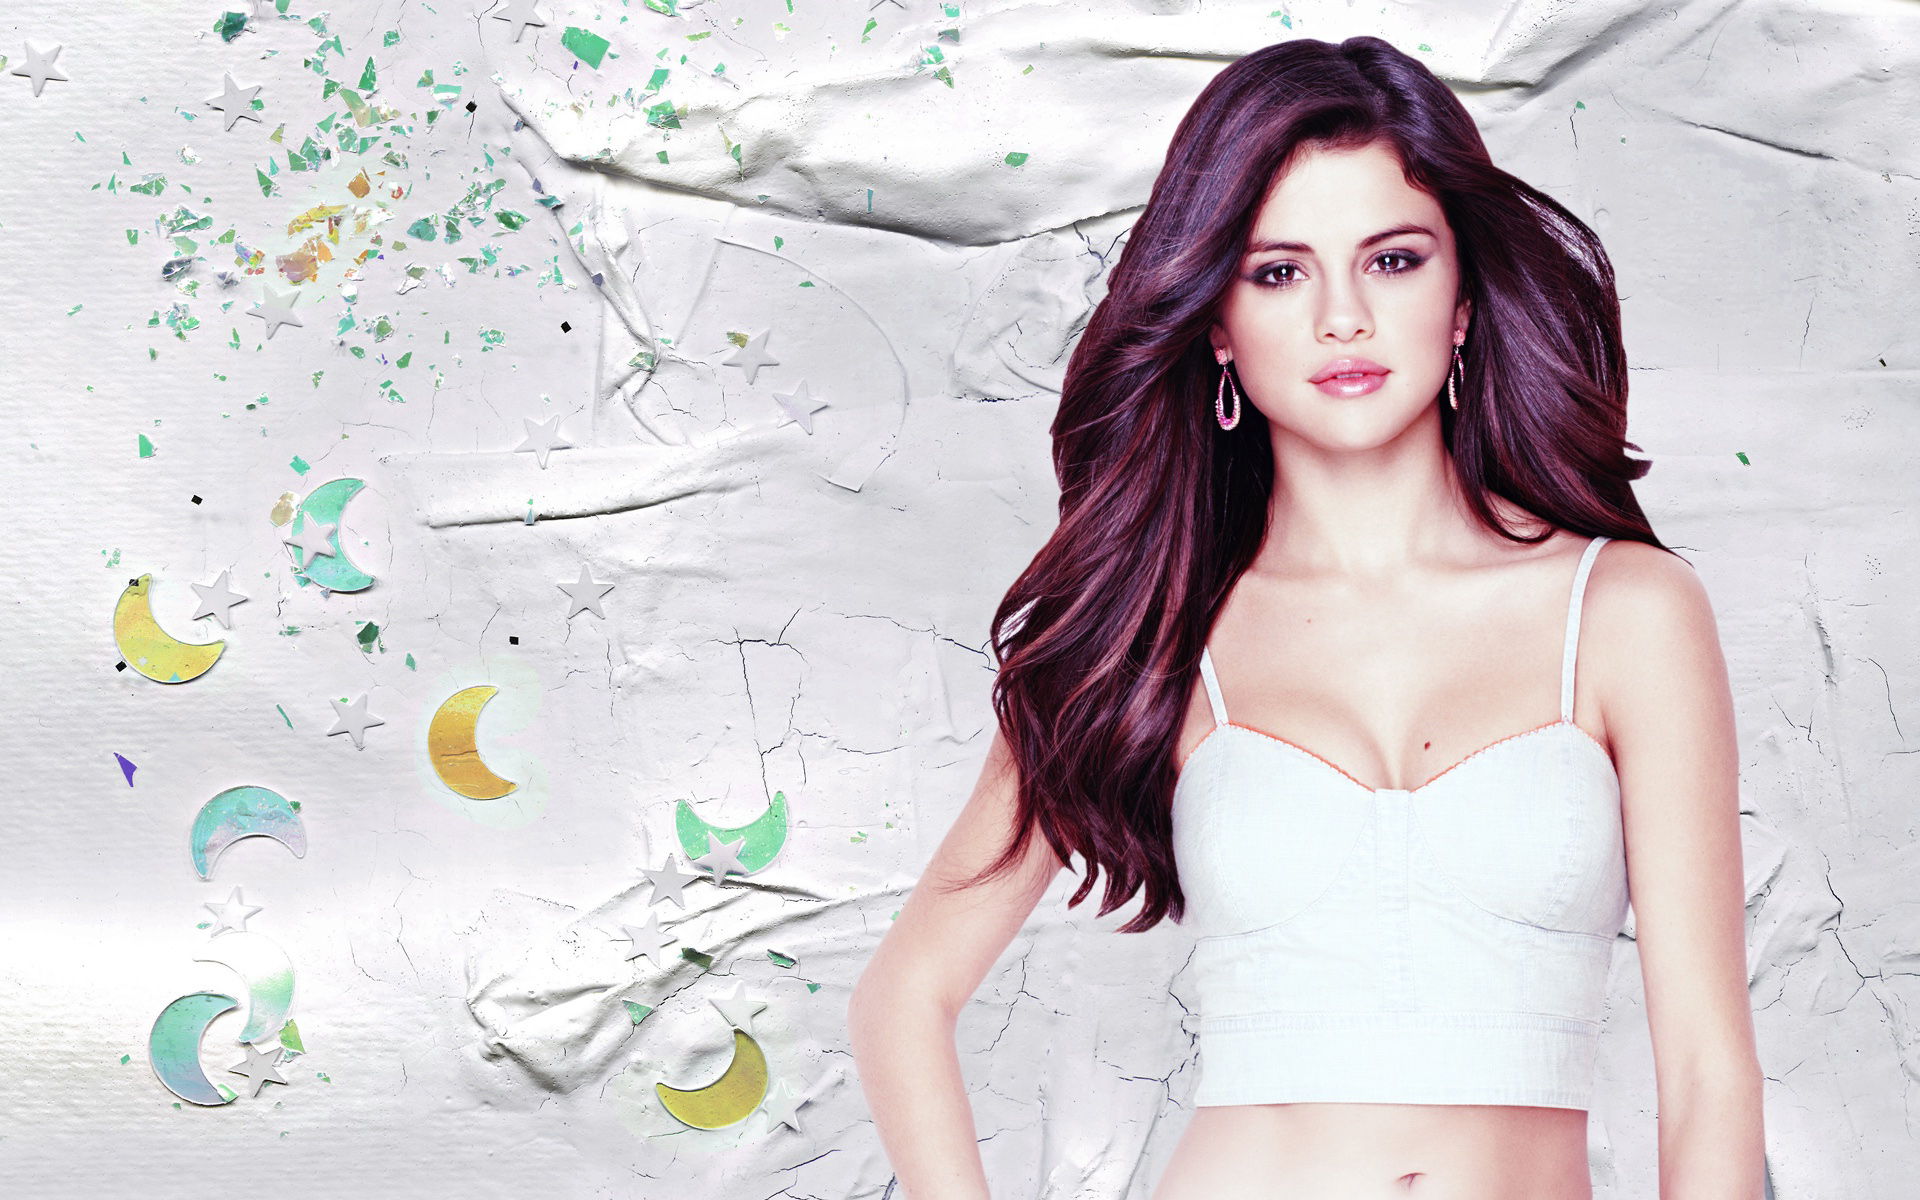 Selena Gomez We Own the Night Wallpapers HD Wallpapers 1920x1200